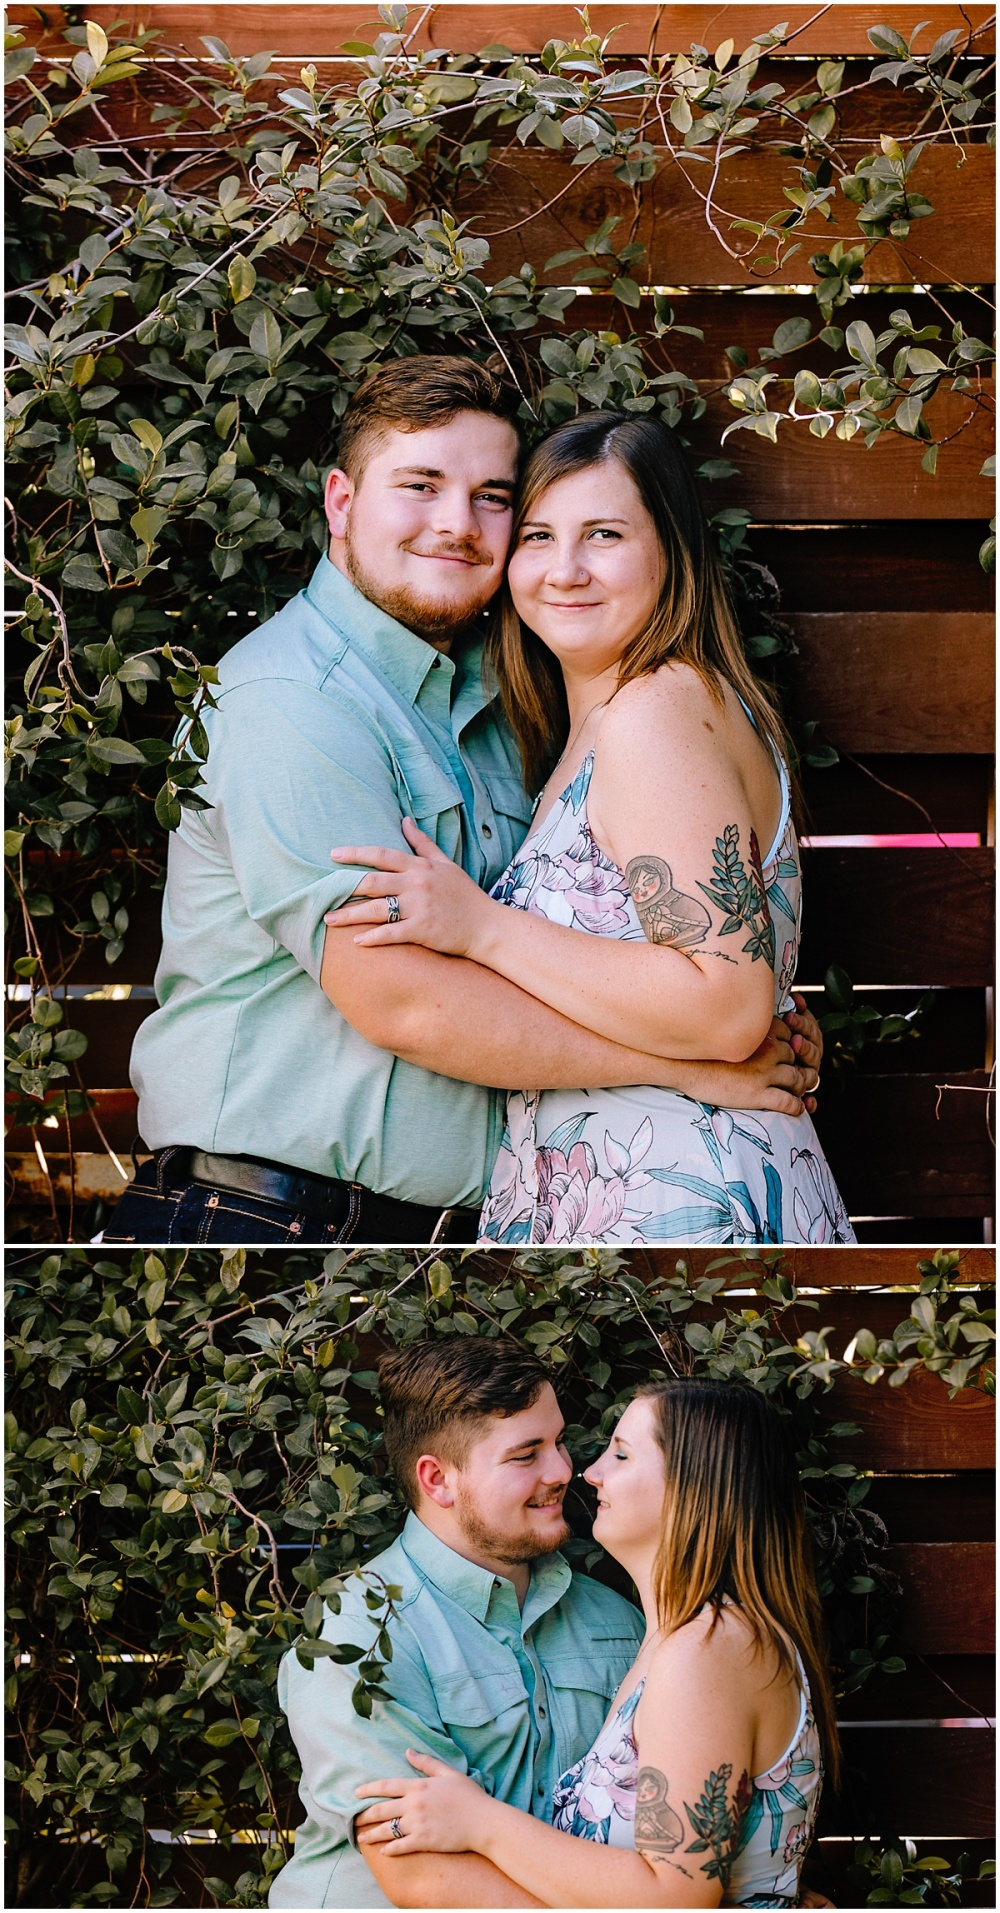 Engagement-Portraits-Couples-New-Braunels-Downtown-Carly-Barton-Photography-Wedding-Photographer-Gruene-Texas_0002.jpg